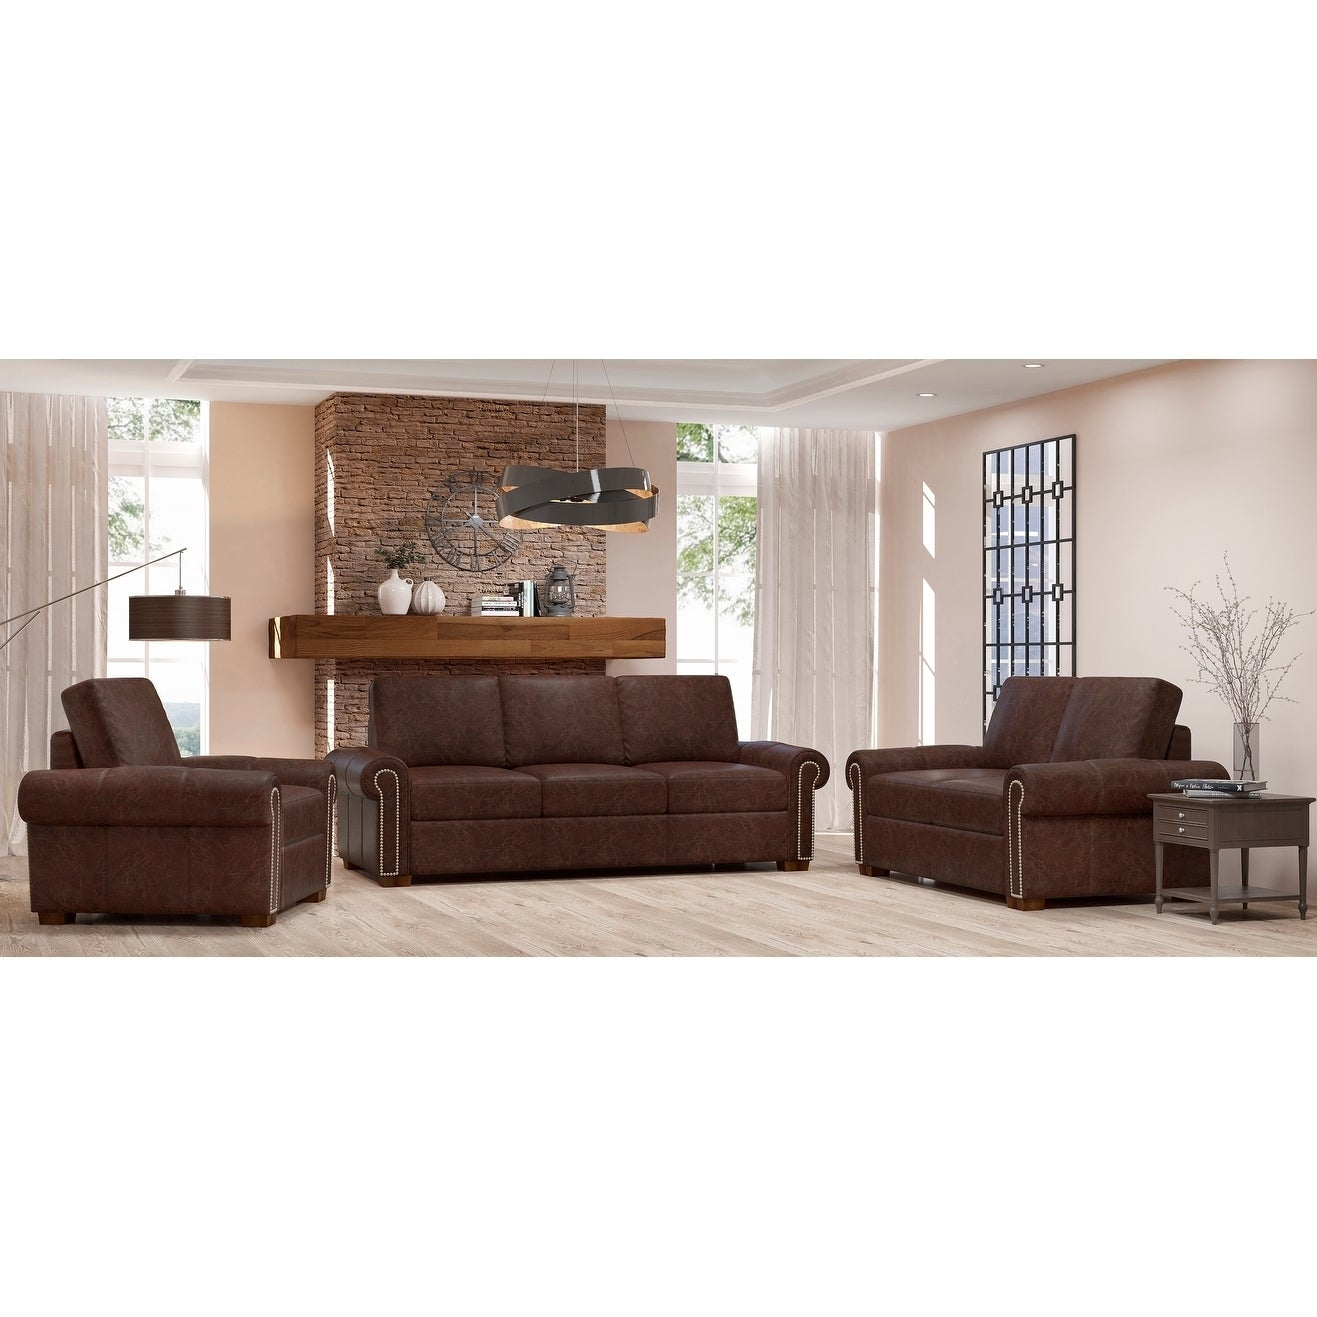 Colchester 100 Top Grain Leather Sofa